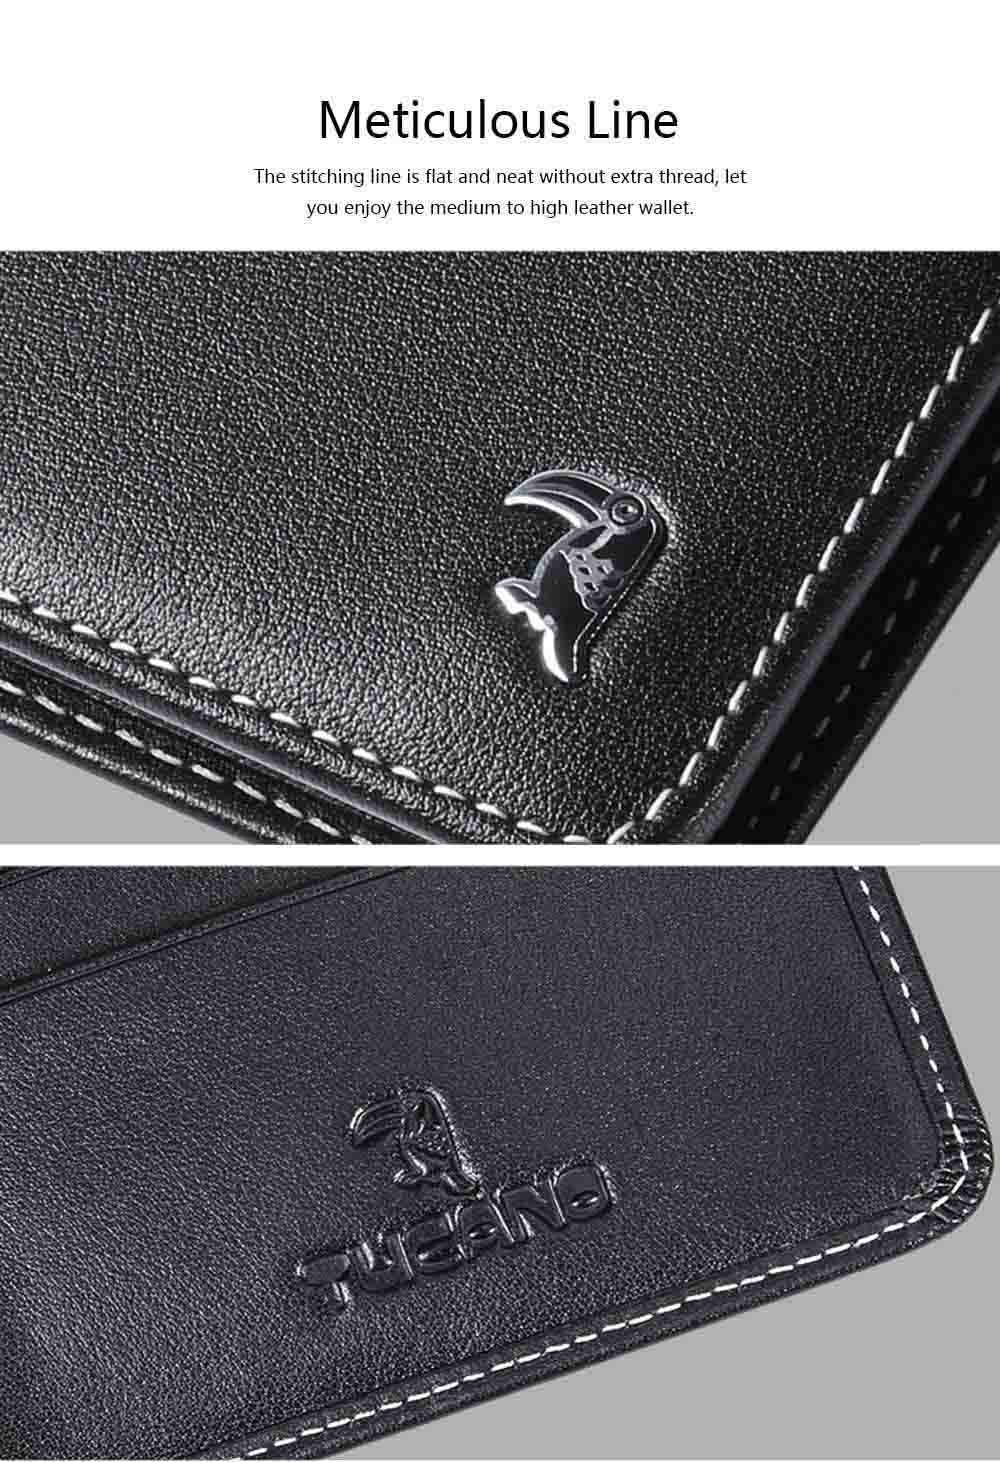 High-end Business Men Wallet, Multifunctional Wallet for Youth, Men's Leather Business Clutch Wrist Bags, Handbag Organizer Card Cash Holder 5